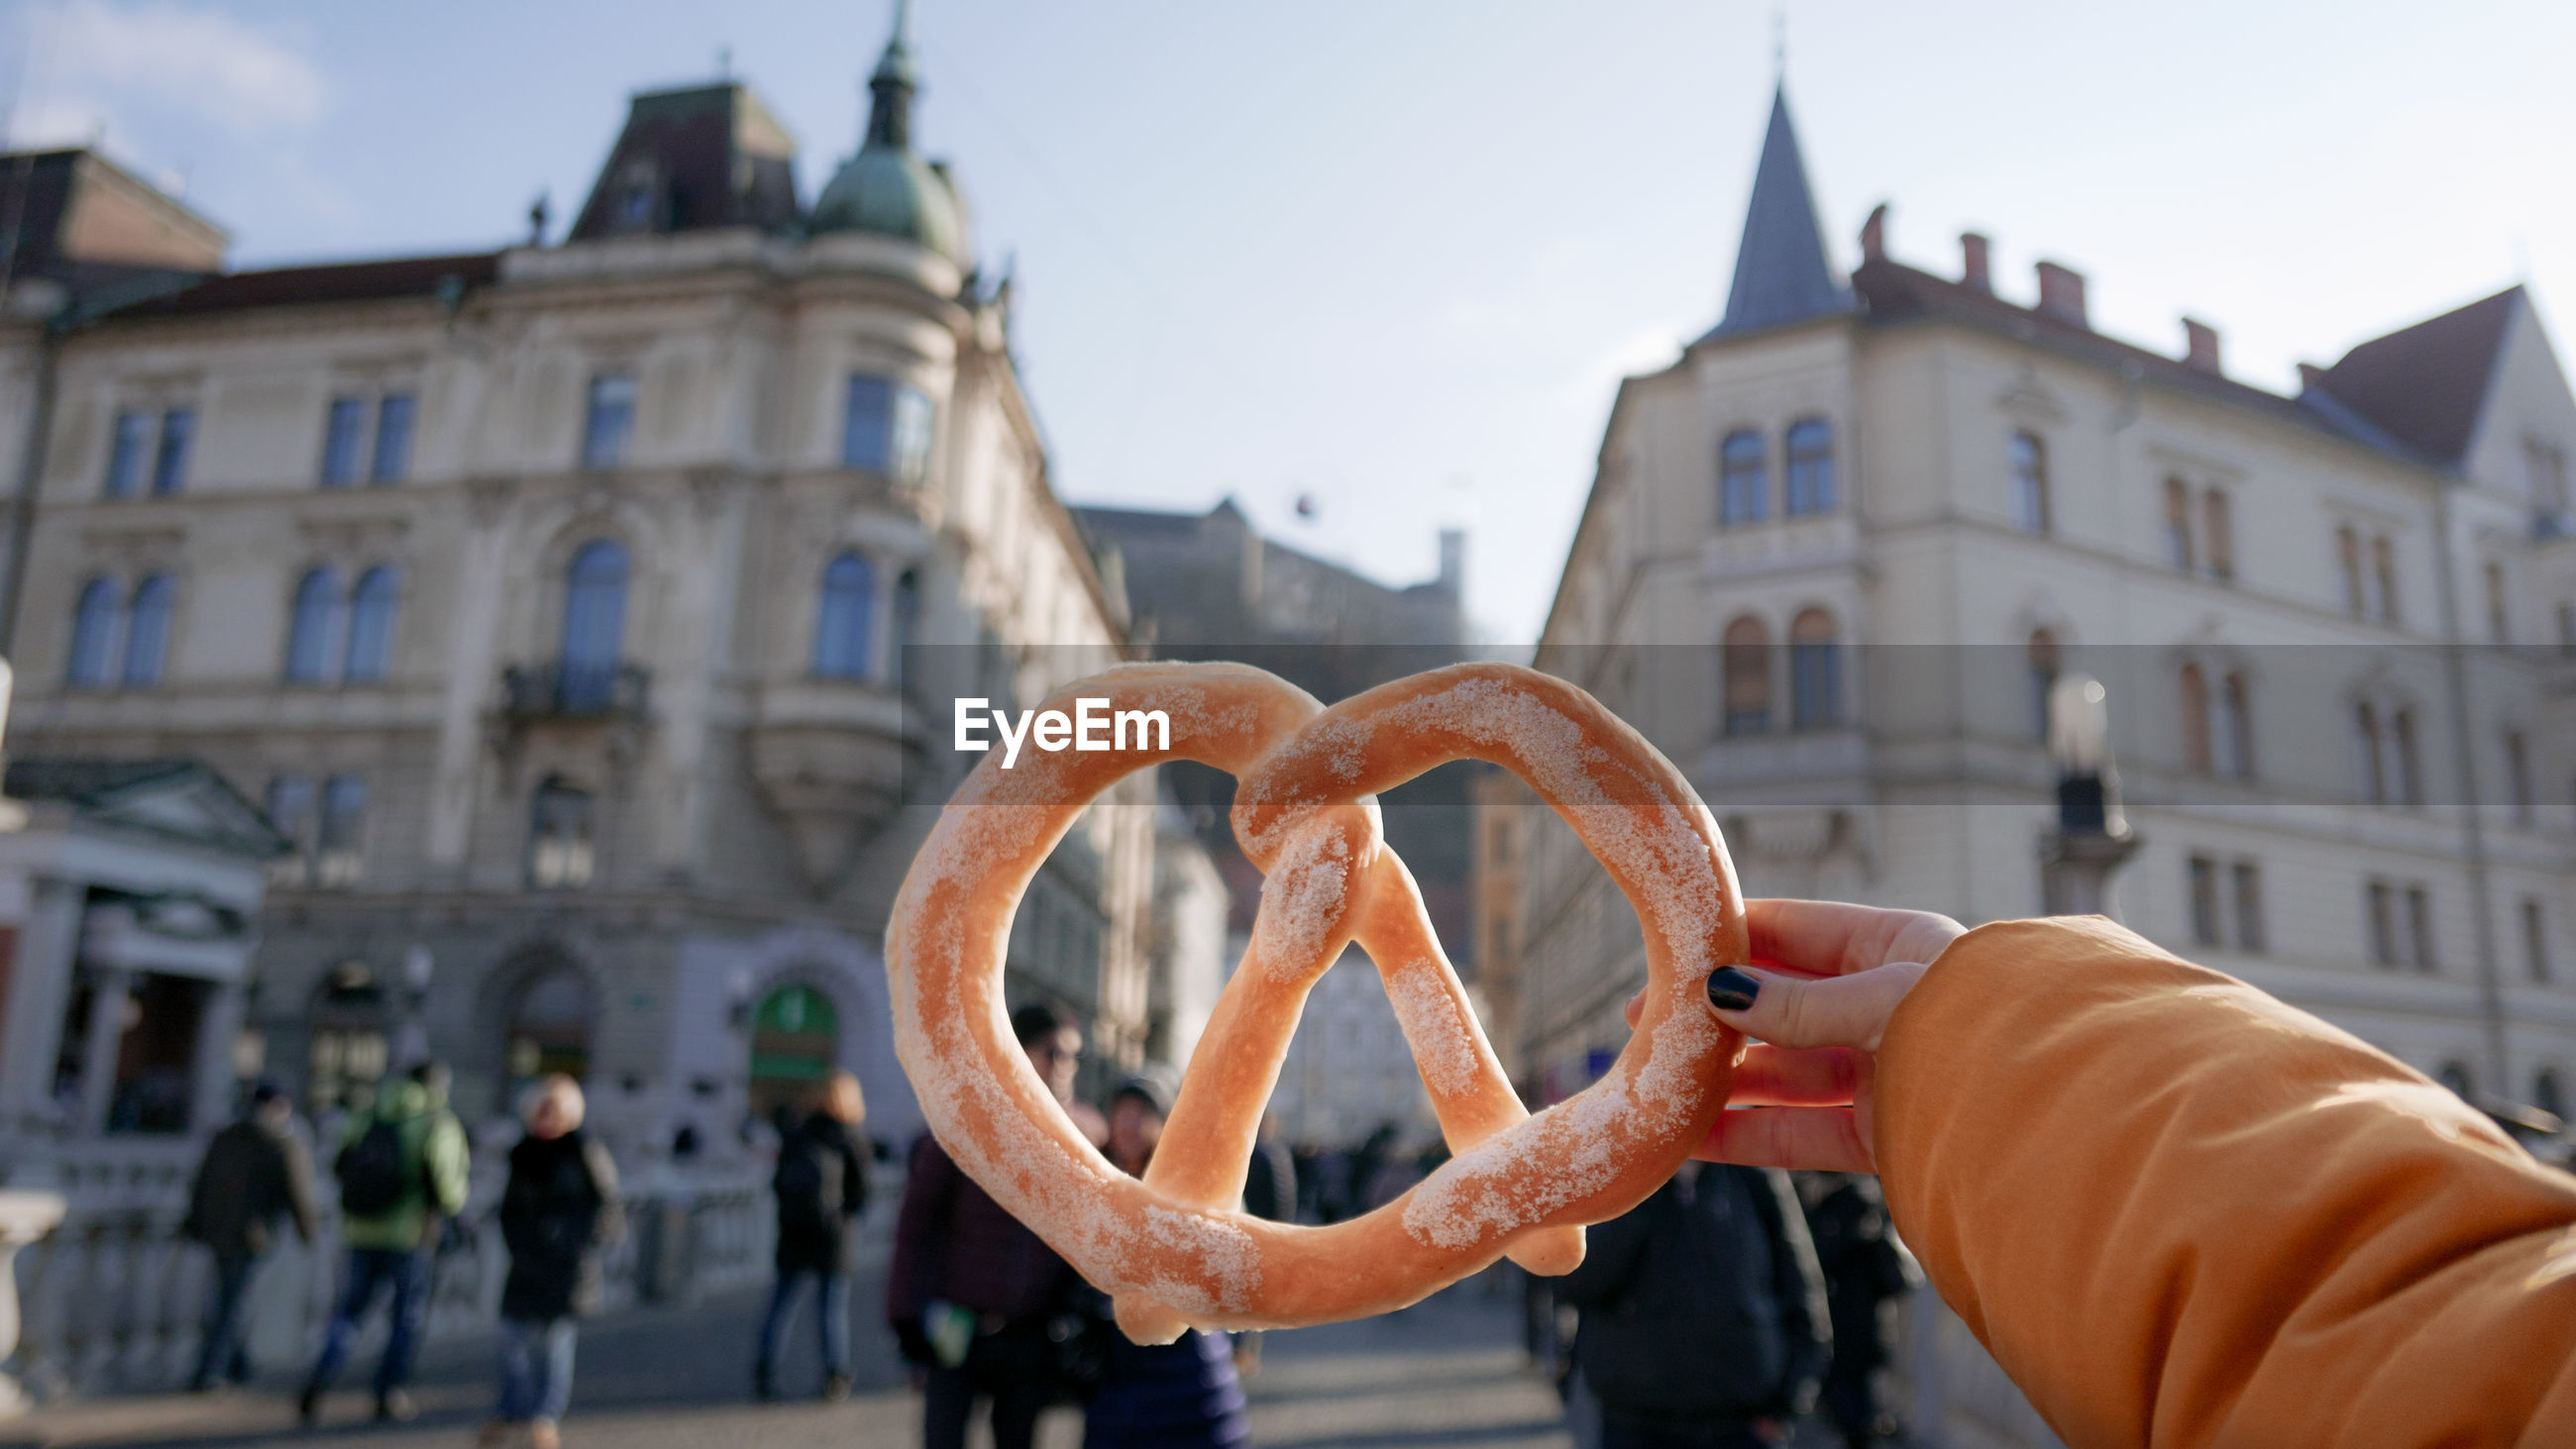 Hand holding pretzel against building in city.